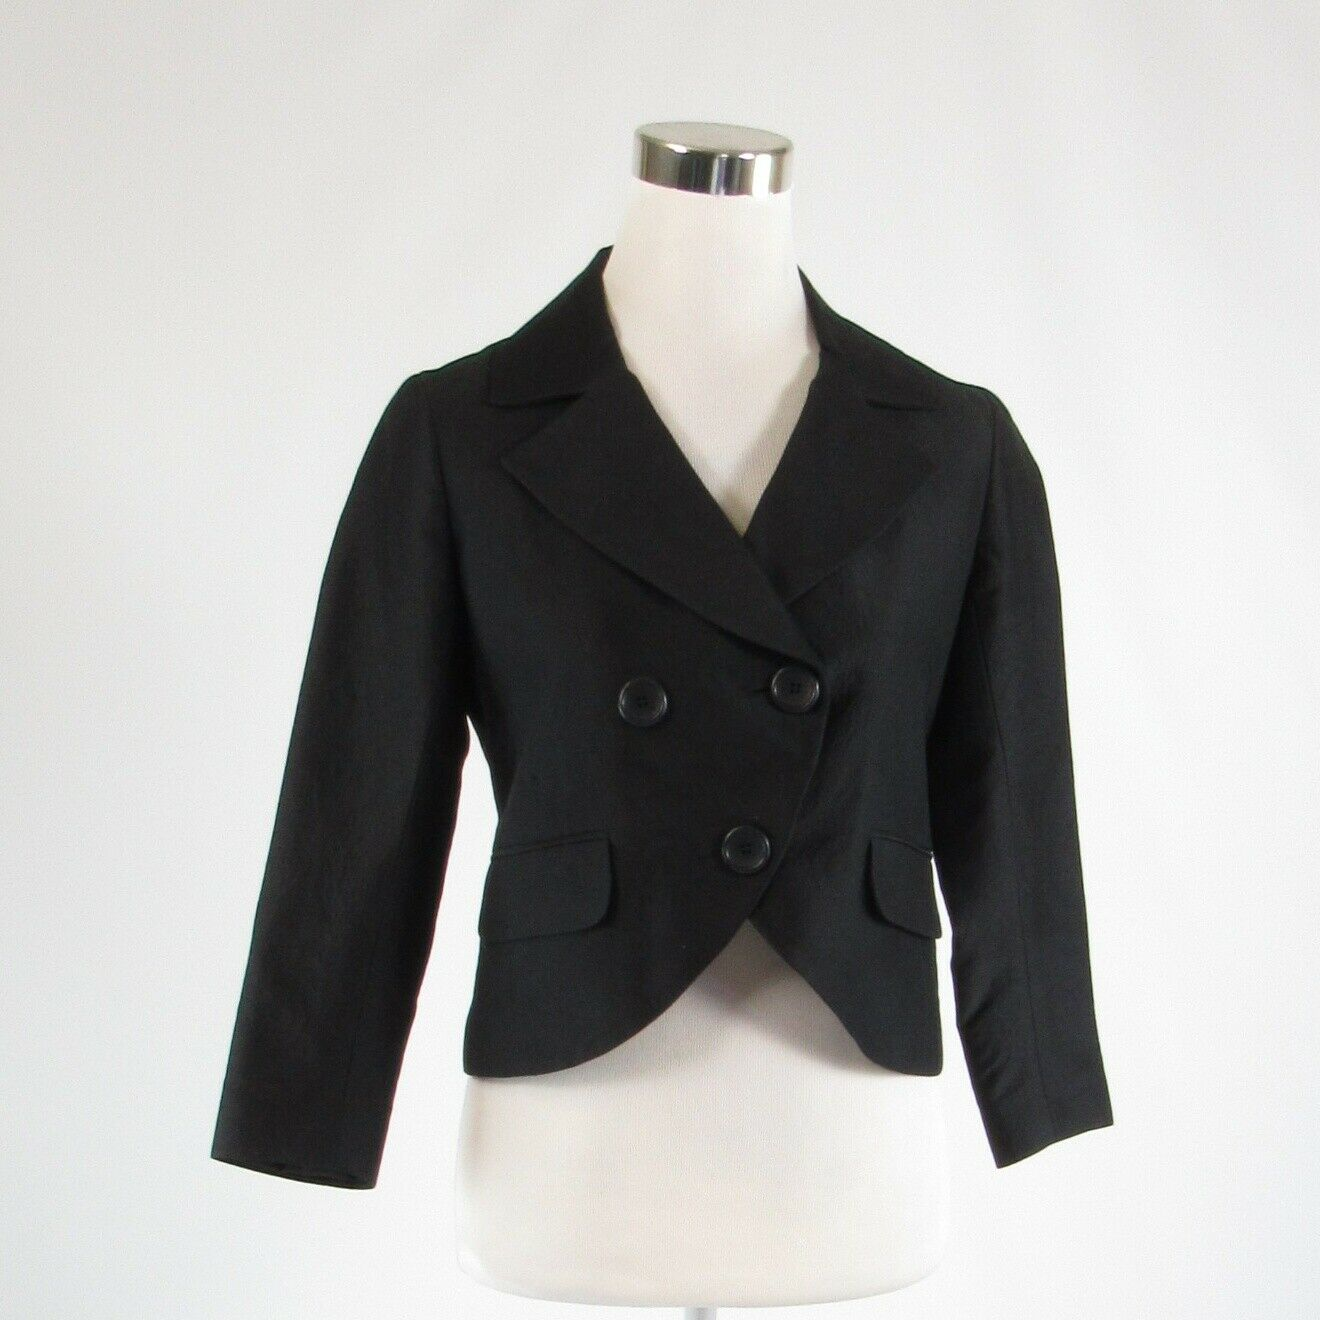 Black textured cotton blend THEORY 3/4 sleeve blazer jacket 4